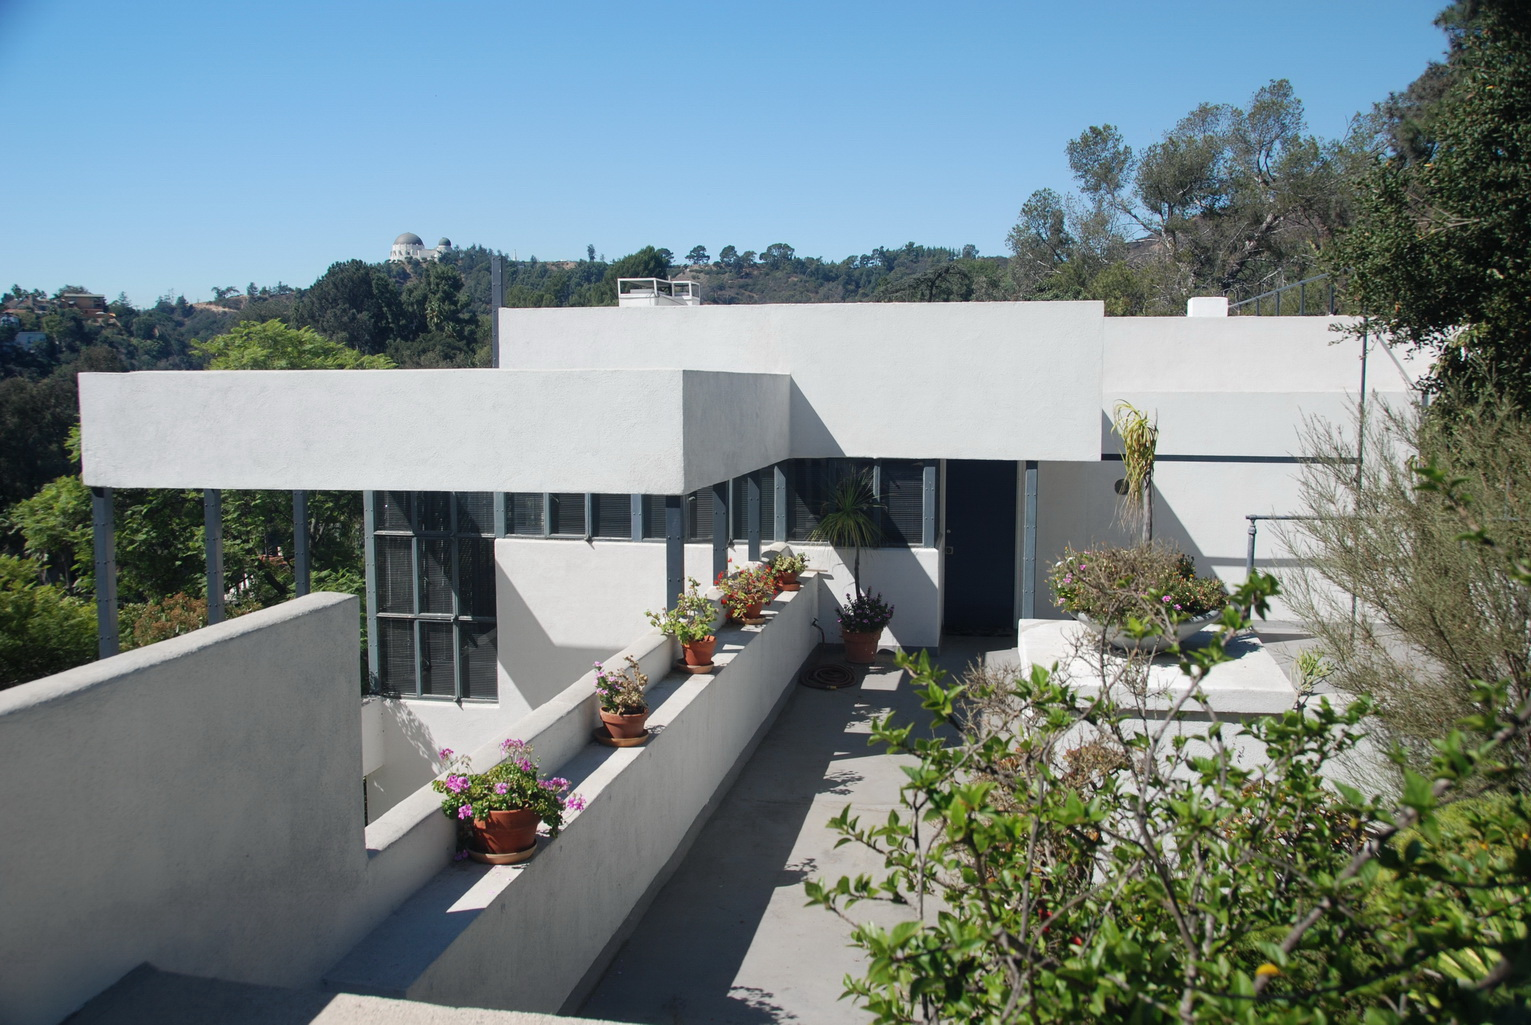 Exterior of a white boxy building, the Lovell House, in California